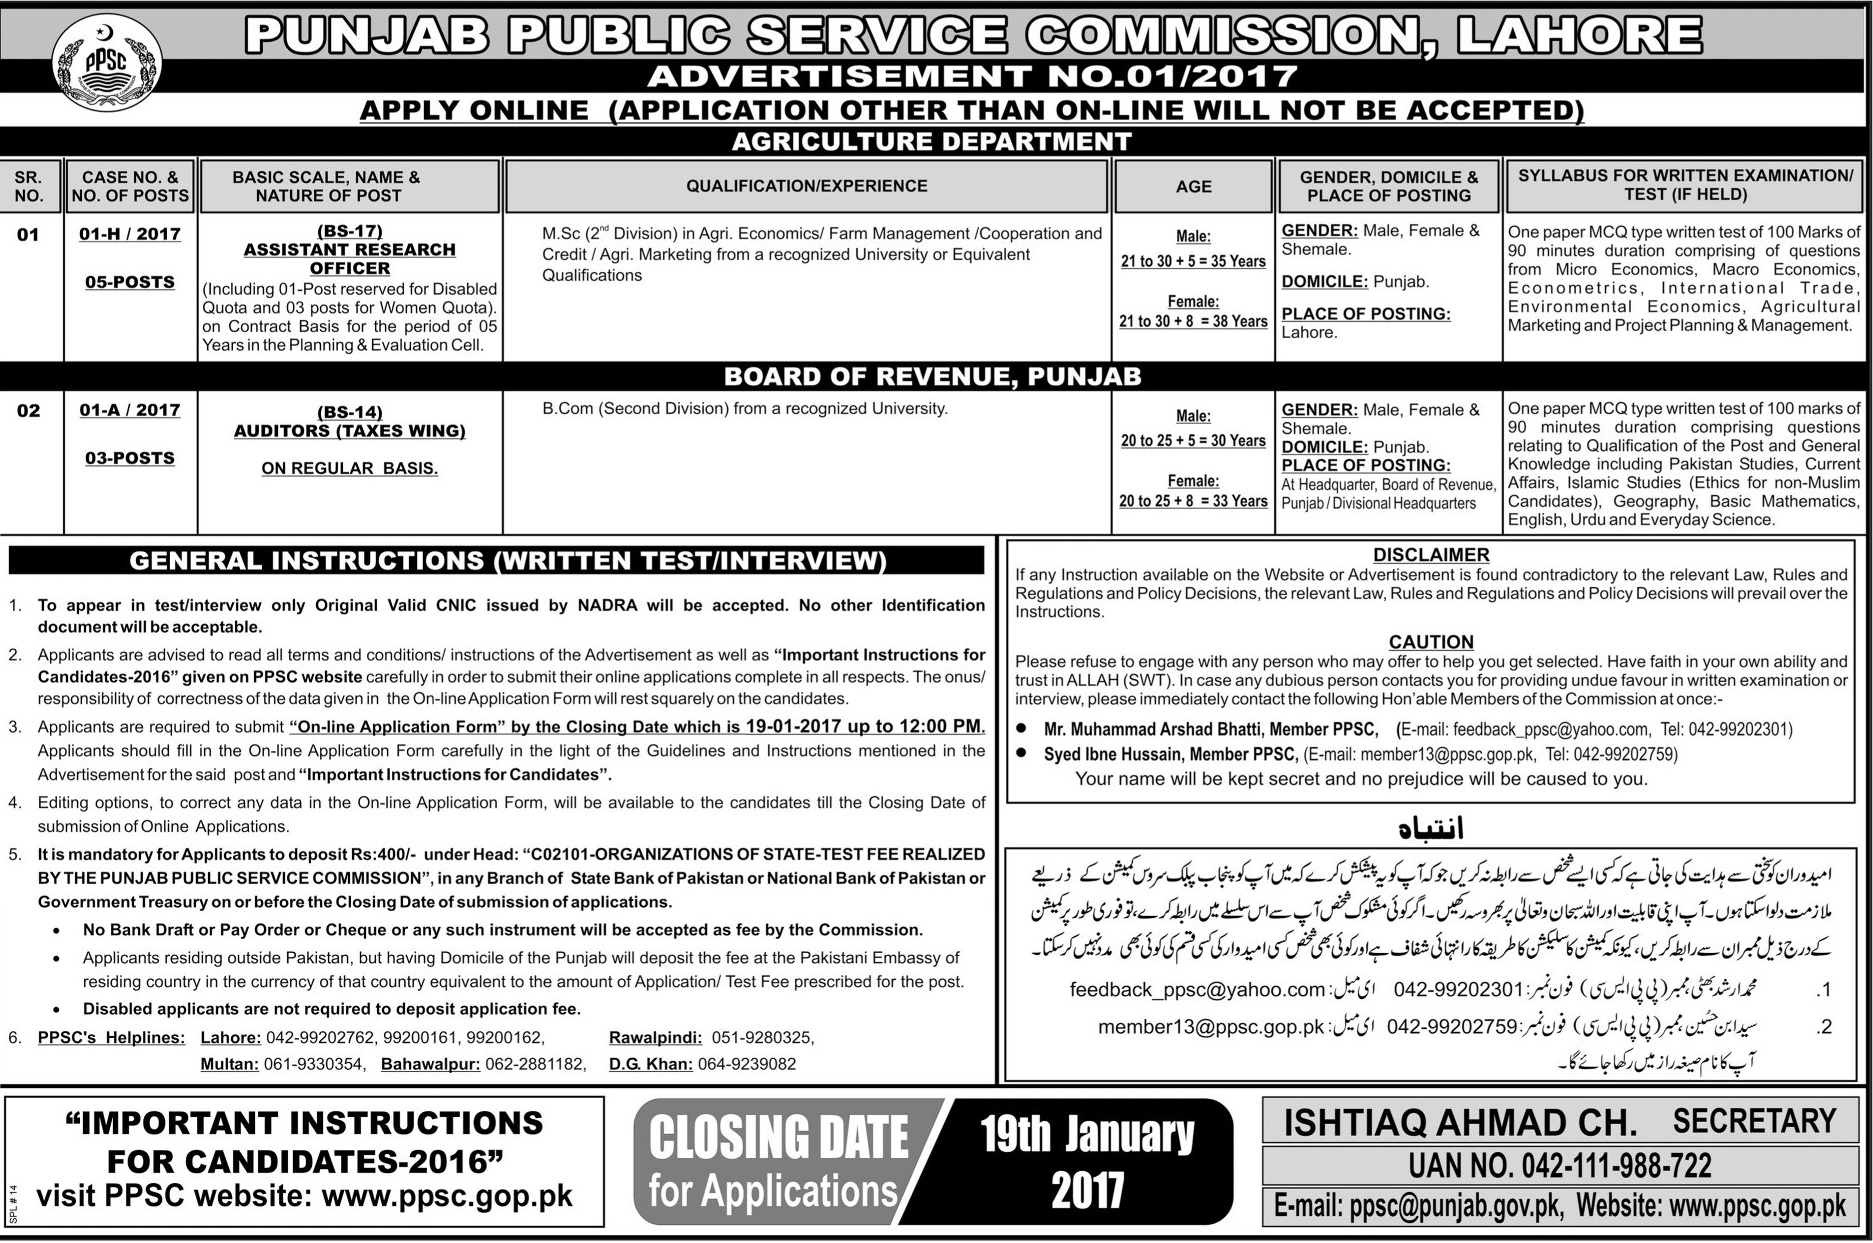 PPSC Agriculture Department Punjab Jobs Opportunities 2018 Online Application Form